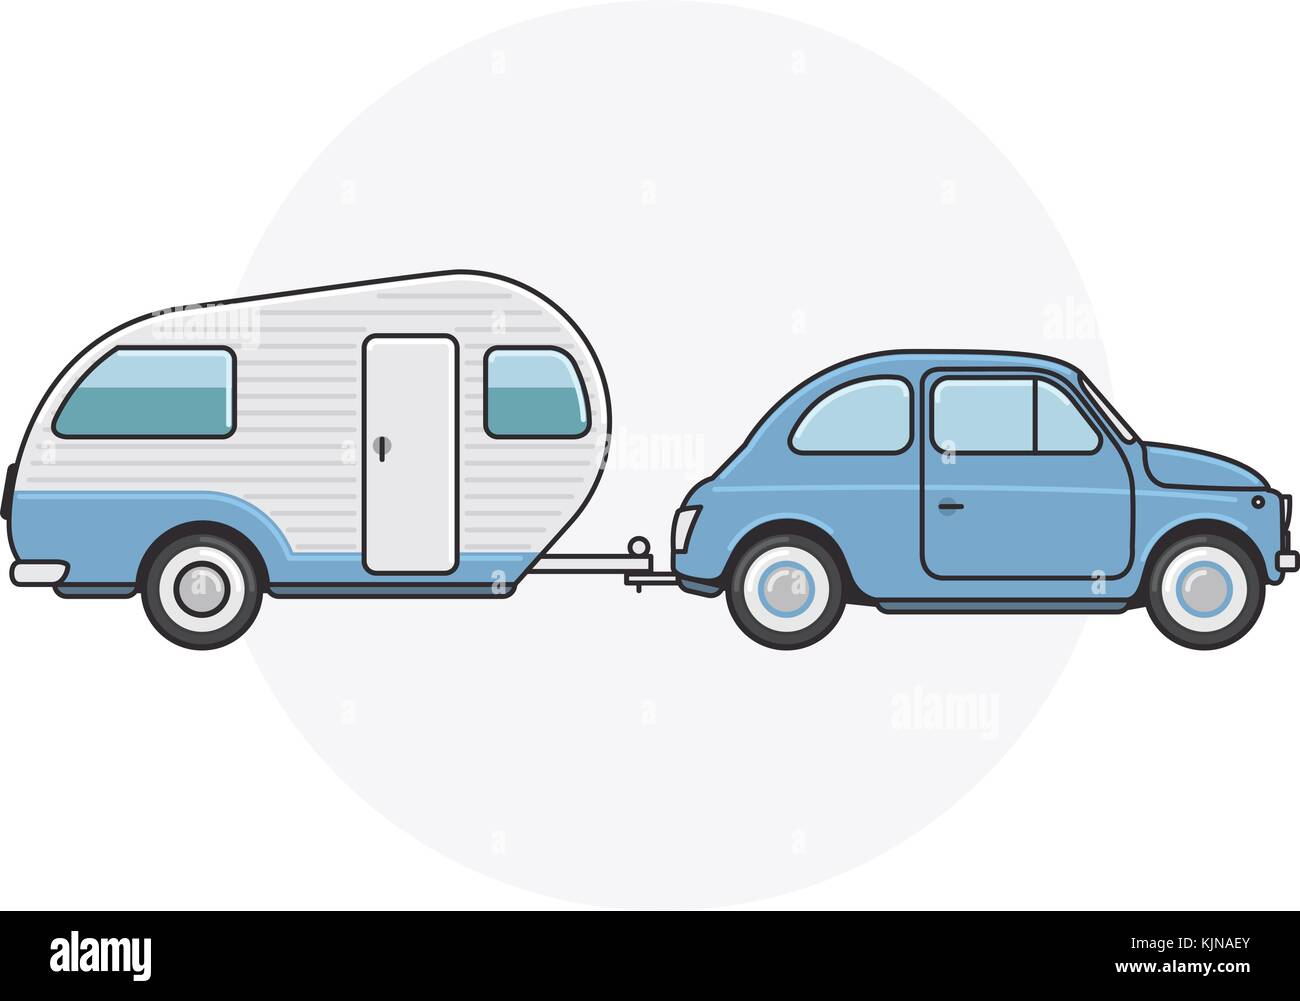 Retro Car With Camper Trailer